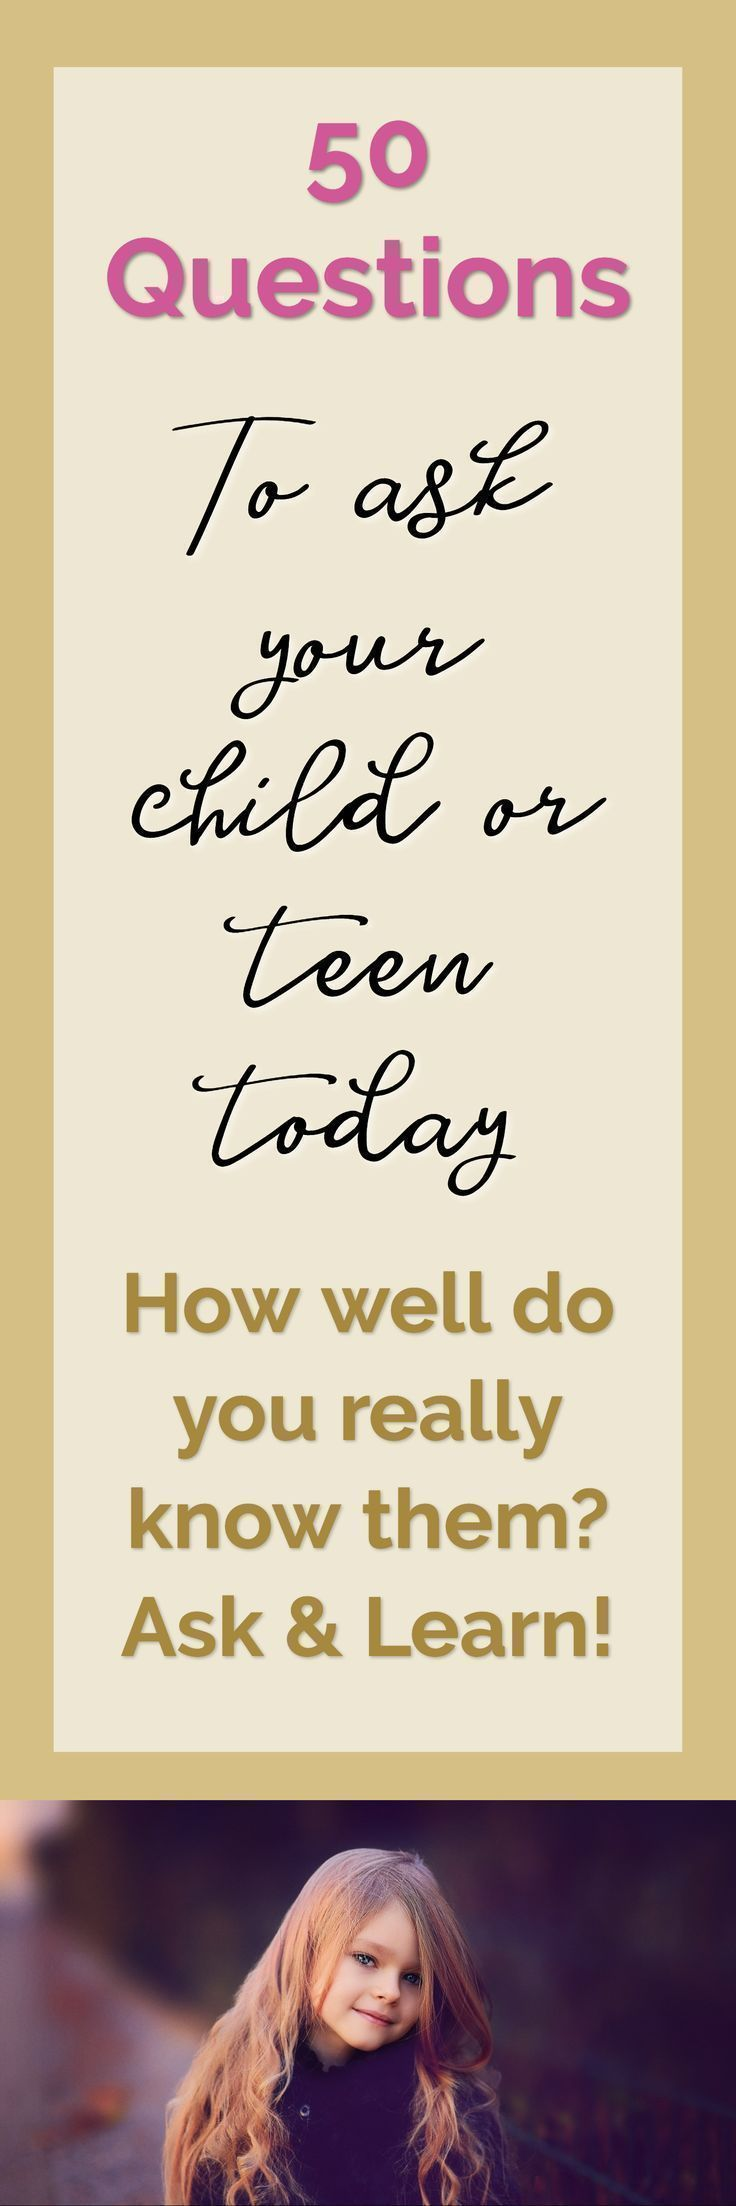 dating tips for teens and parents images quotes kids